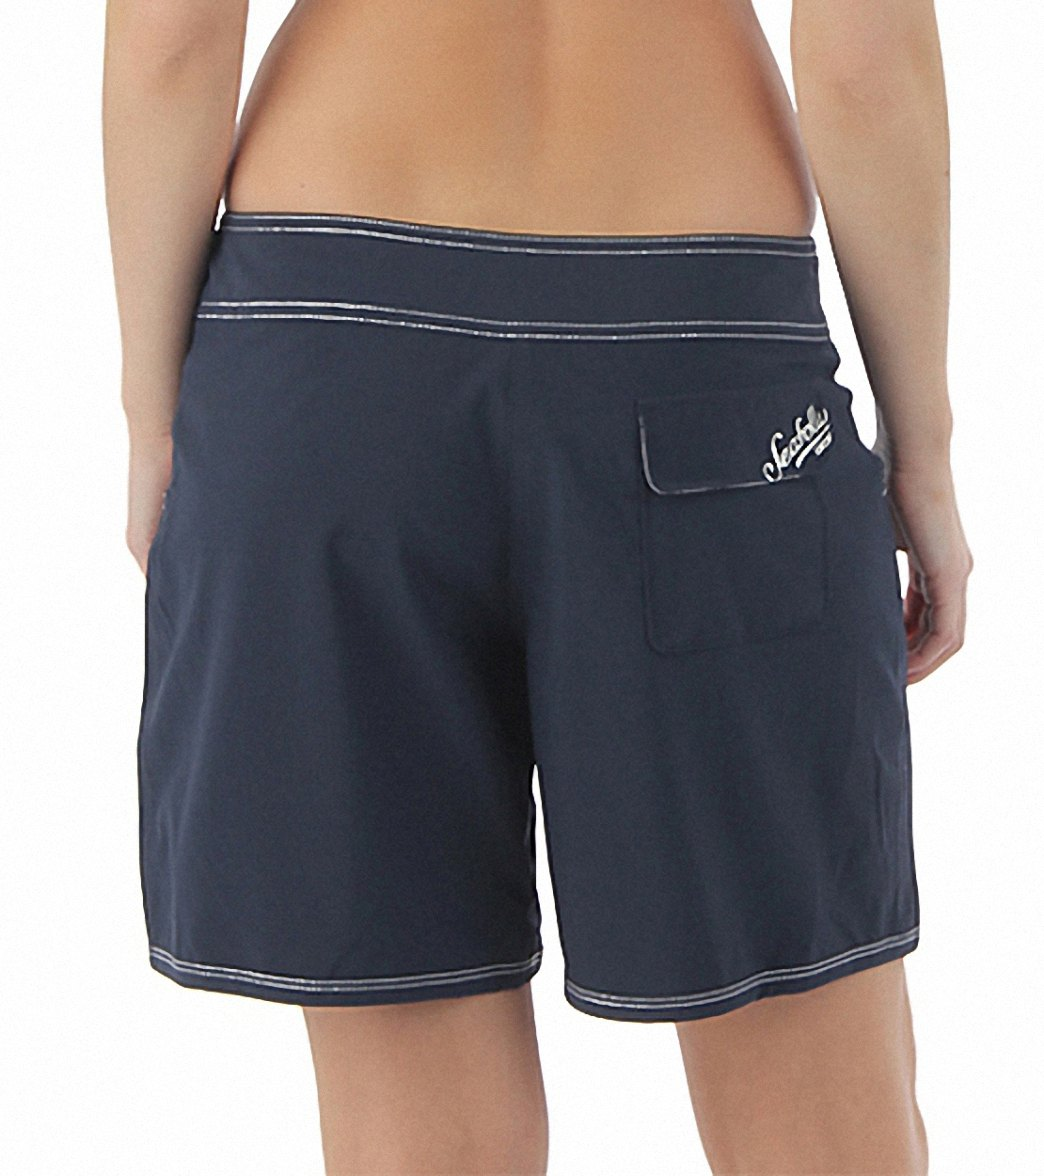 700de40183 Seafolly Women's Barracuda Mid Length Boardshort at SwimOutlet.com ...